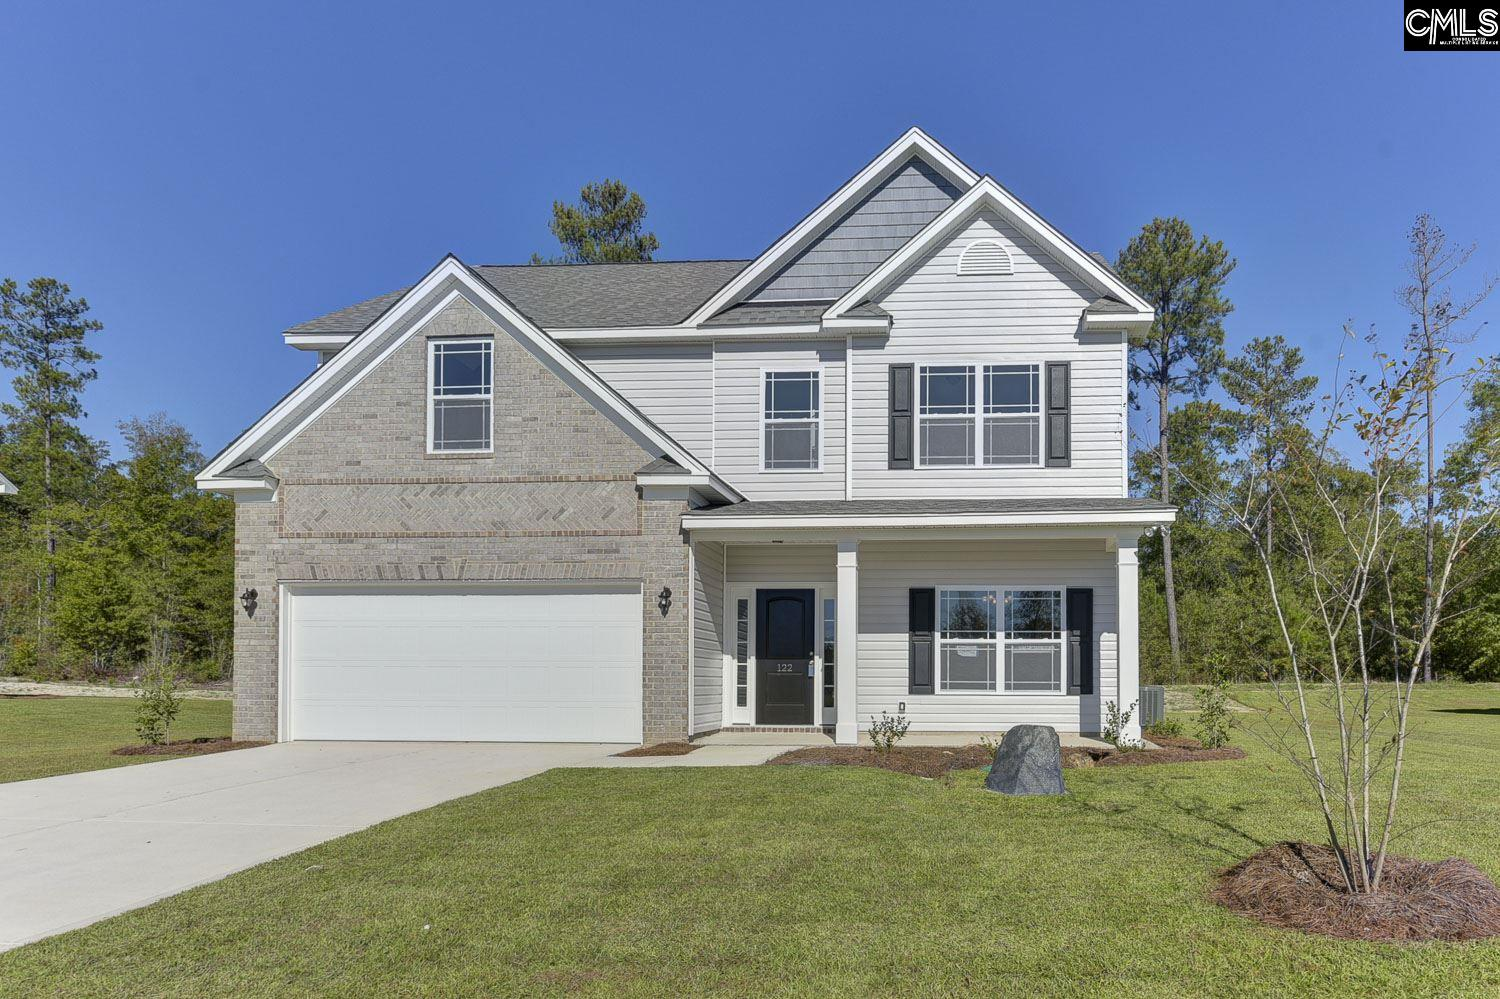 122 Tall Pines Gaston, SC 29053